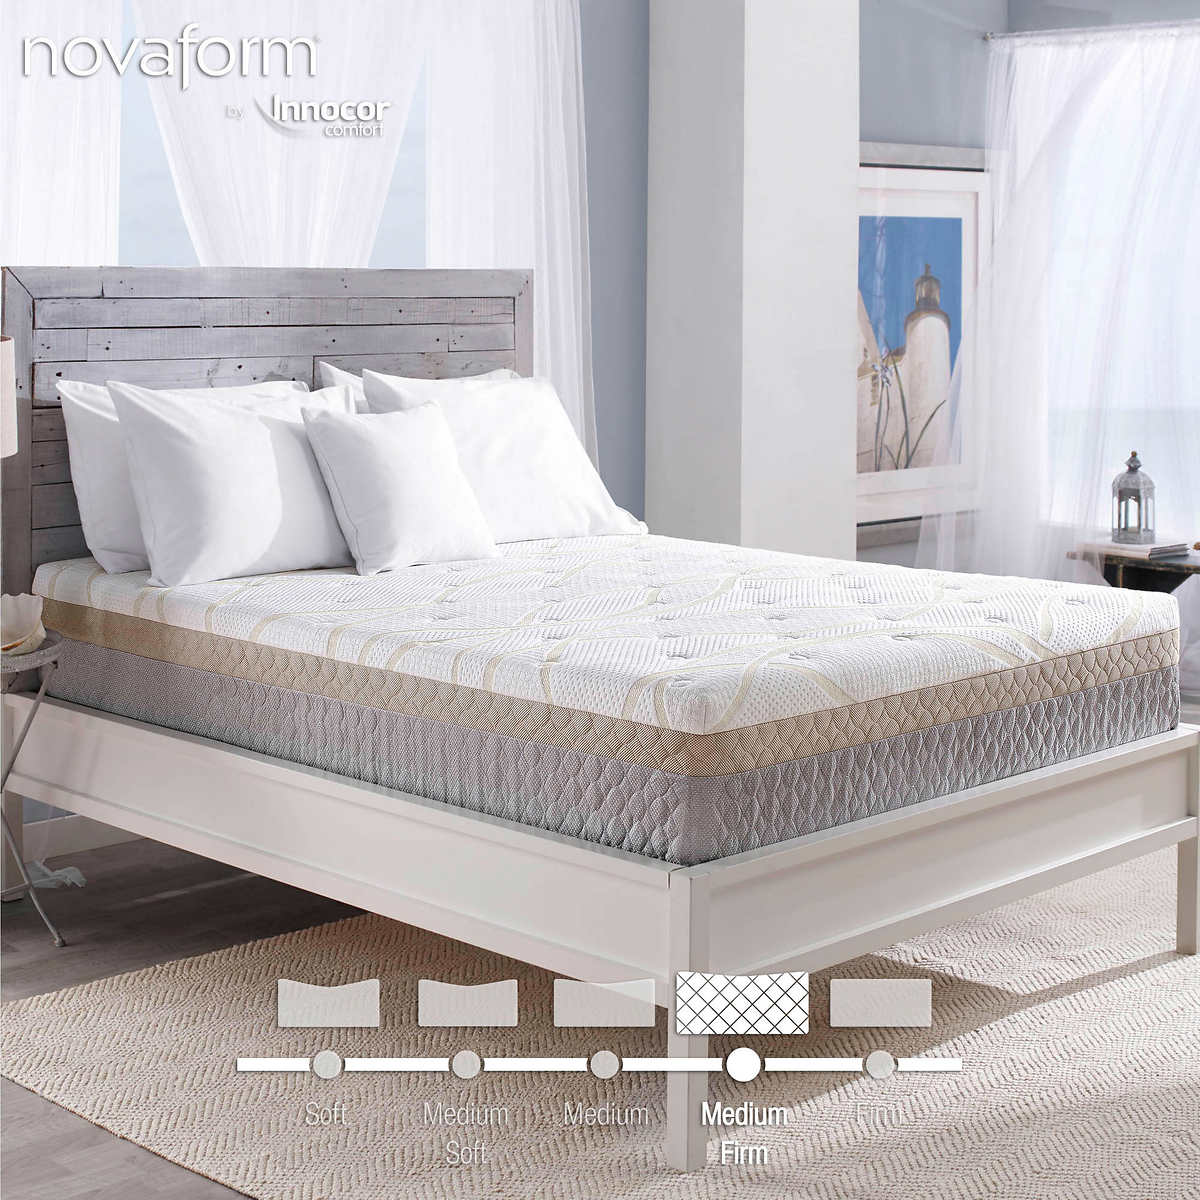 Novaform mattress - A better bed for you and your family